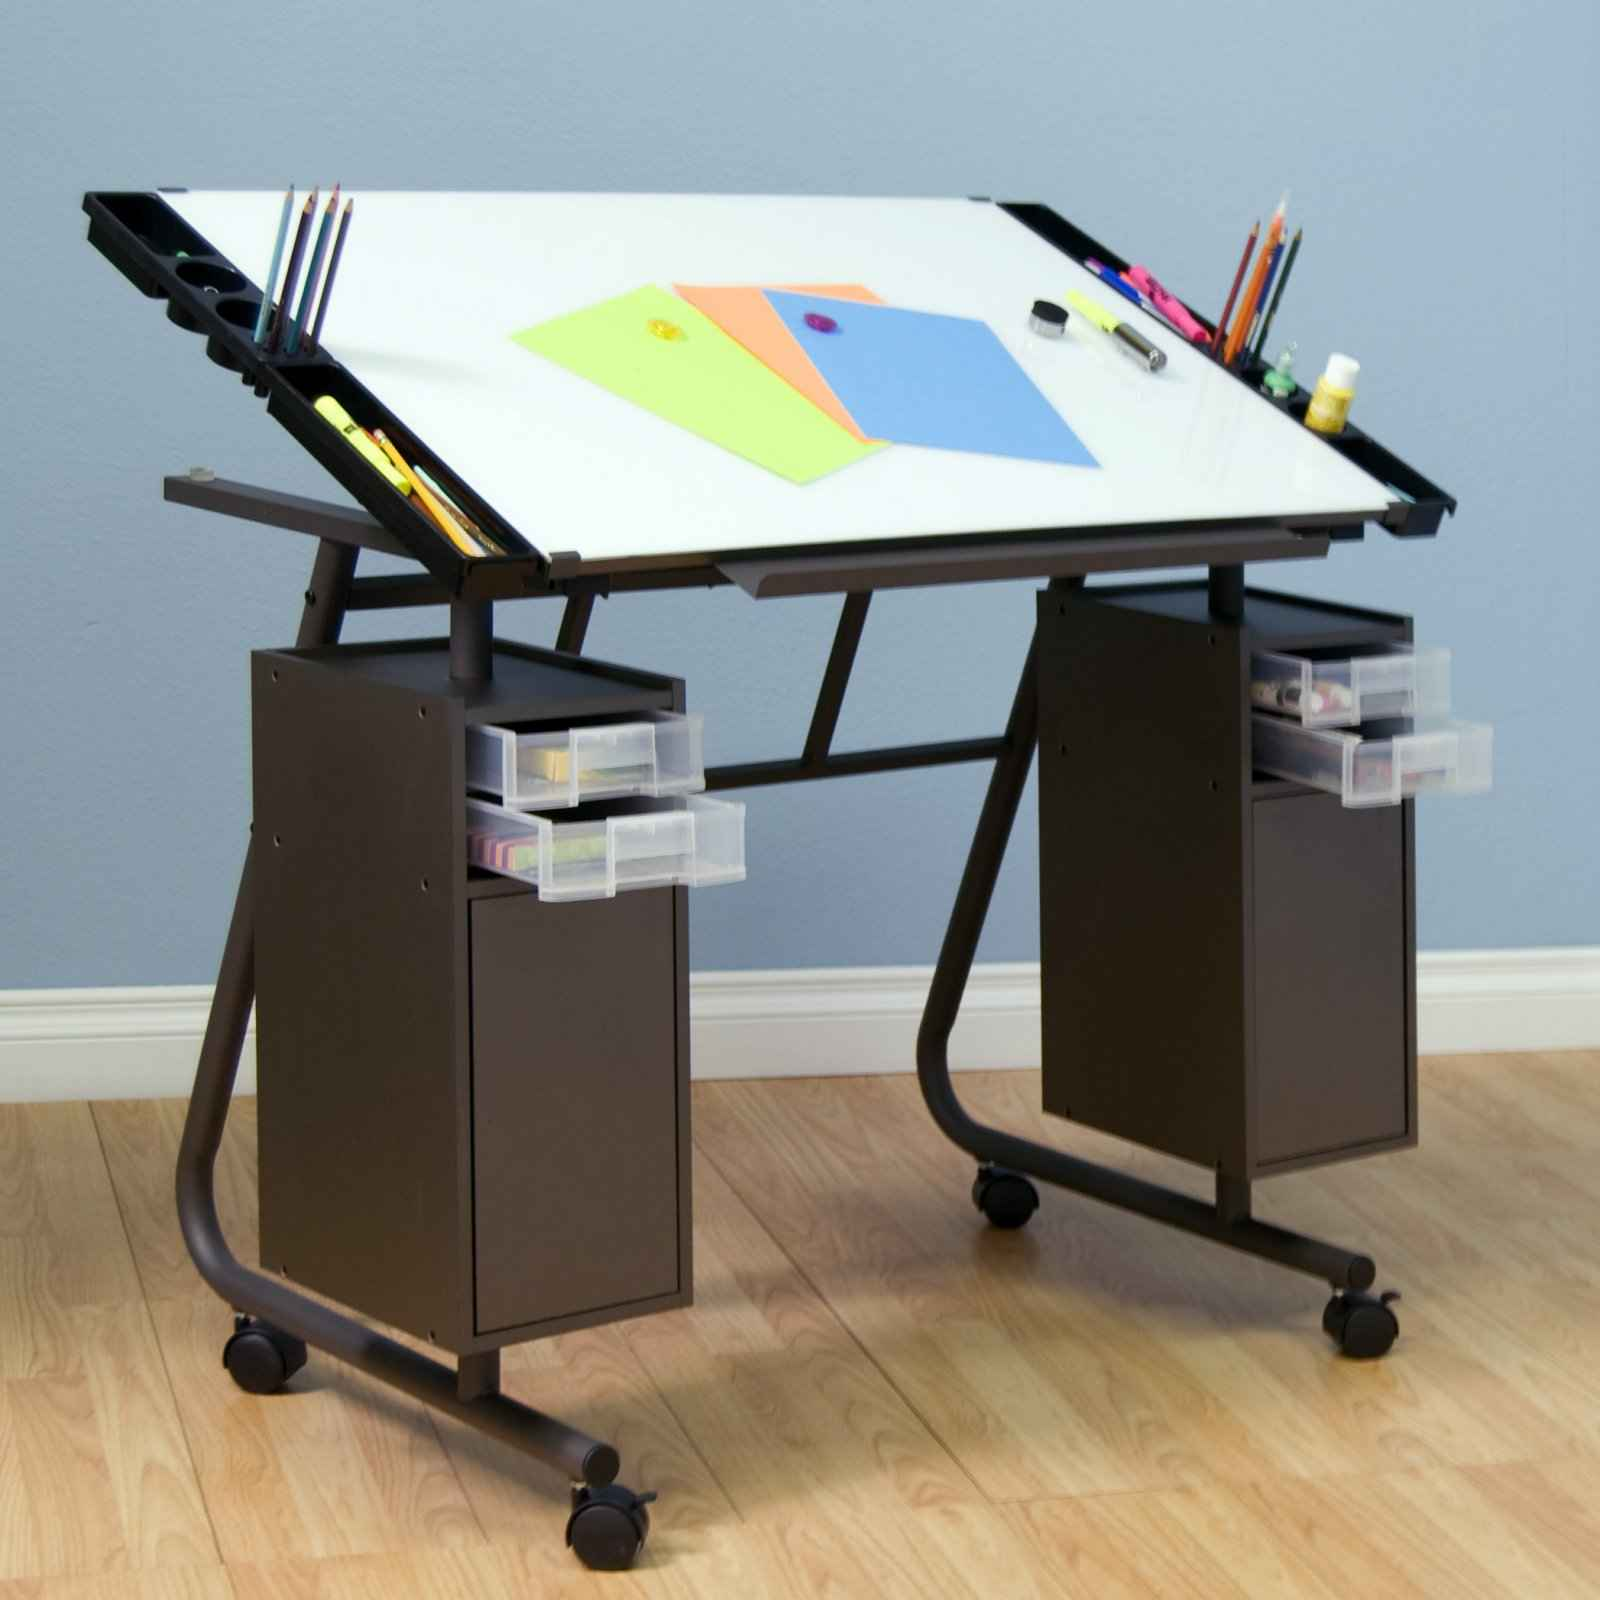 Steps of how to build a adjustable drafting tables ikea for Ikea drawing desk